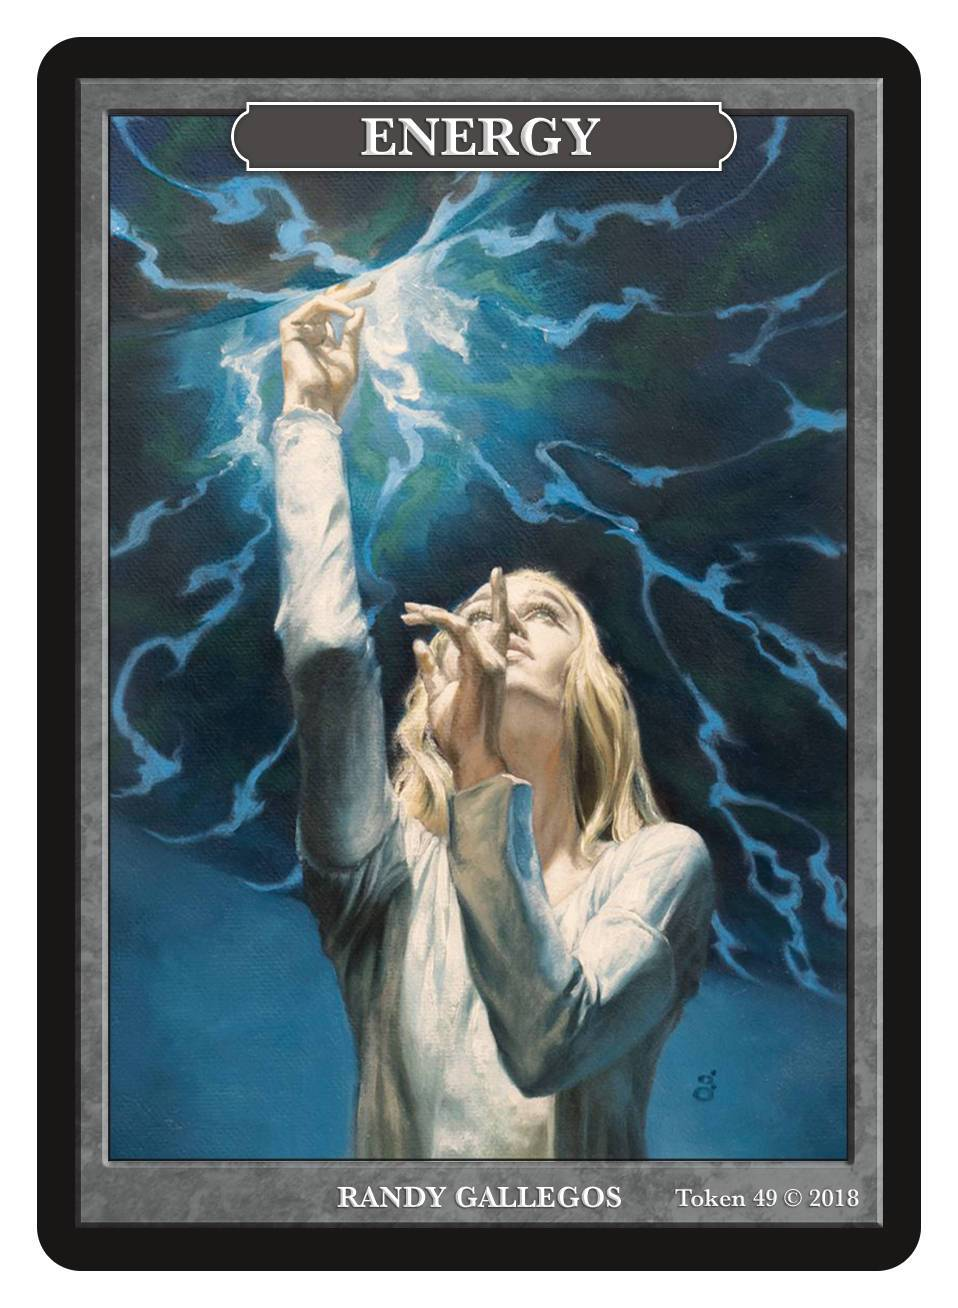 Energy Token by Randy Gallegos - Token - Original Magic Art - Accessories for Magic the Gathering and other card games